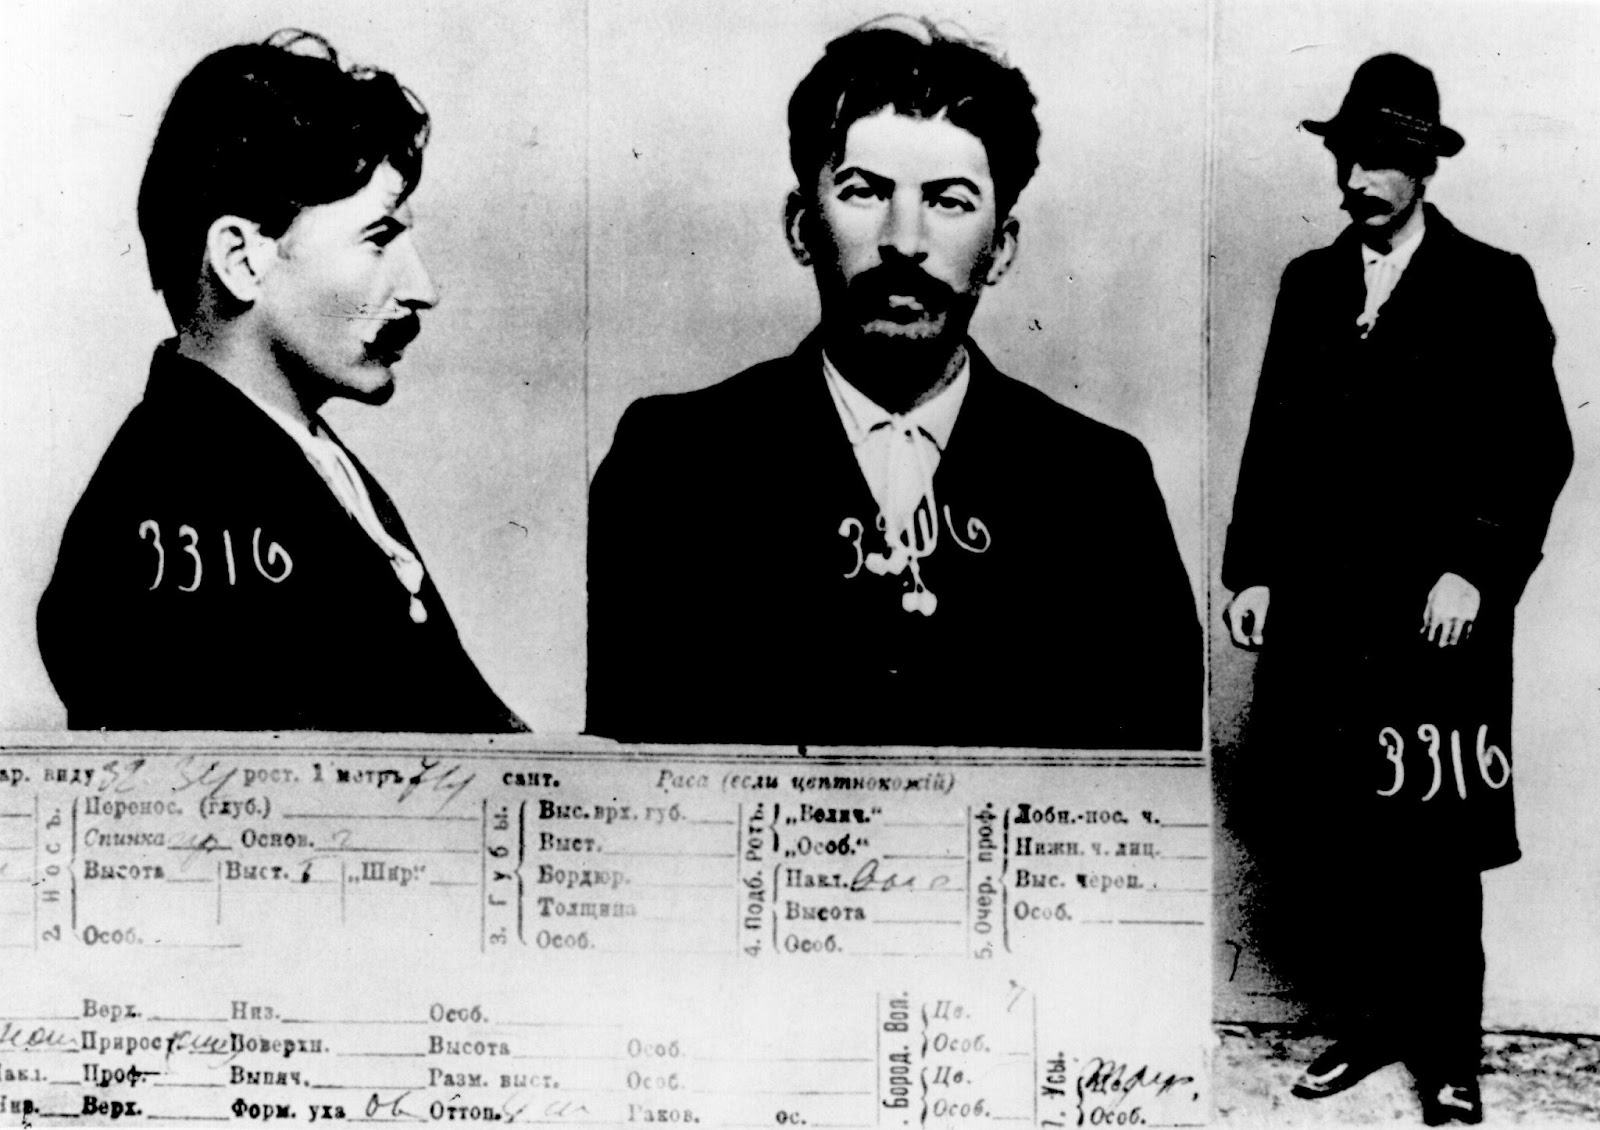 e everyday top 15 facts you didn t know about joseph stalin mugshot of joseph stalin held by okhrana 1911 he was 33 years old